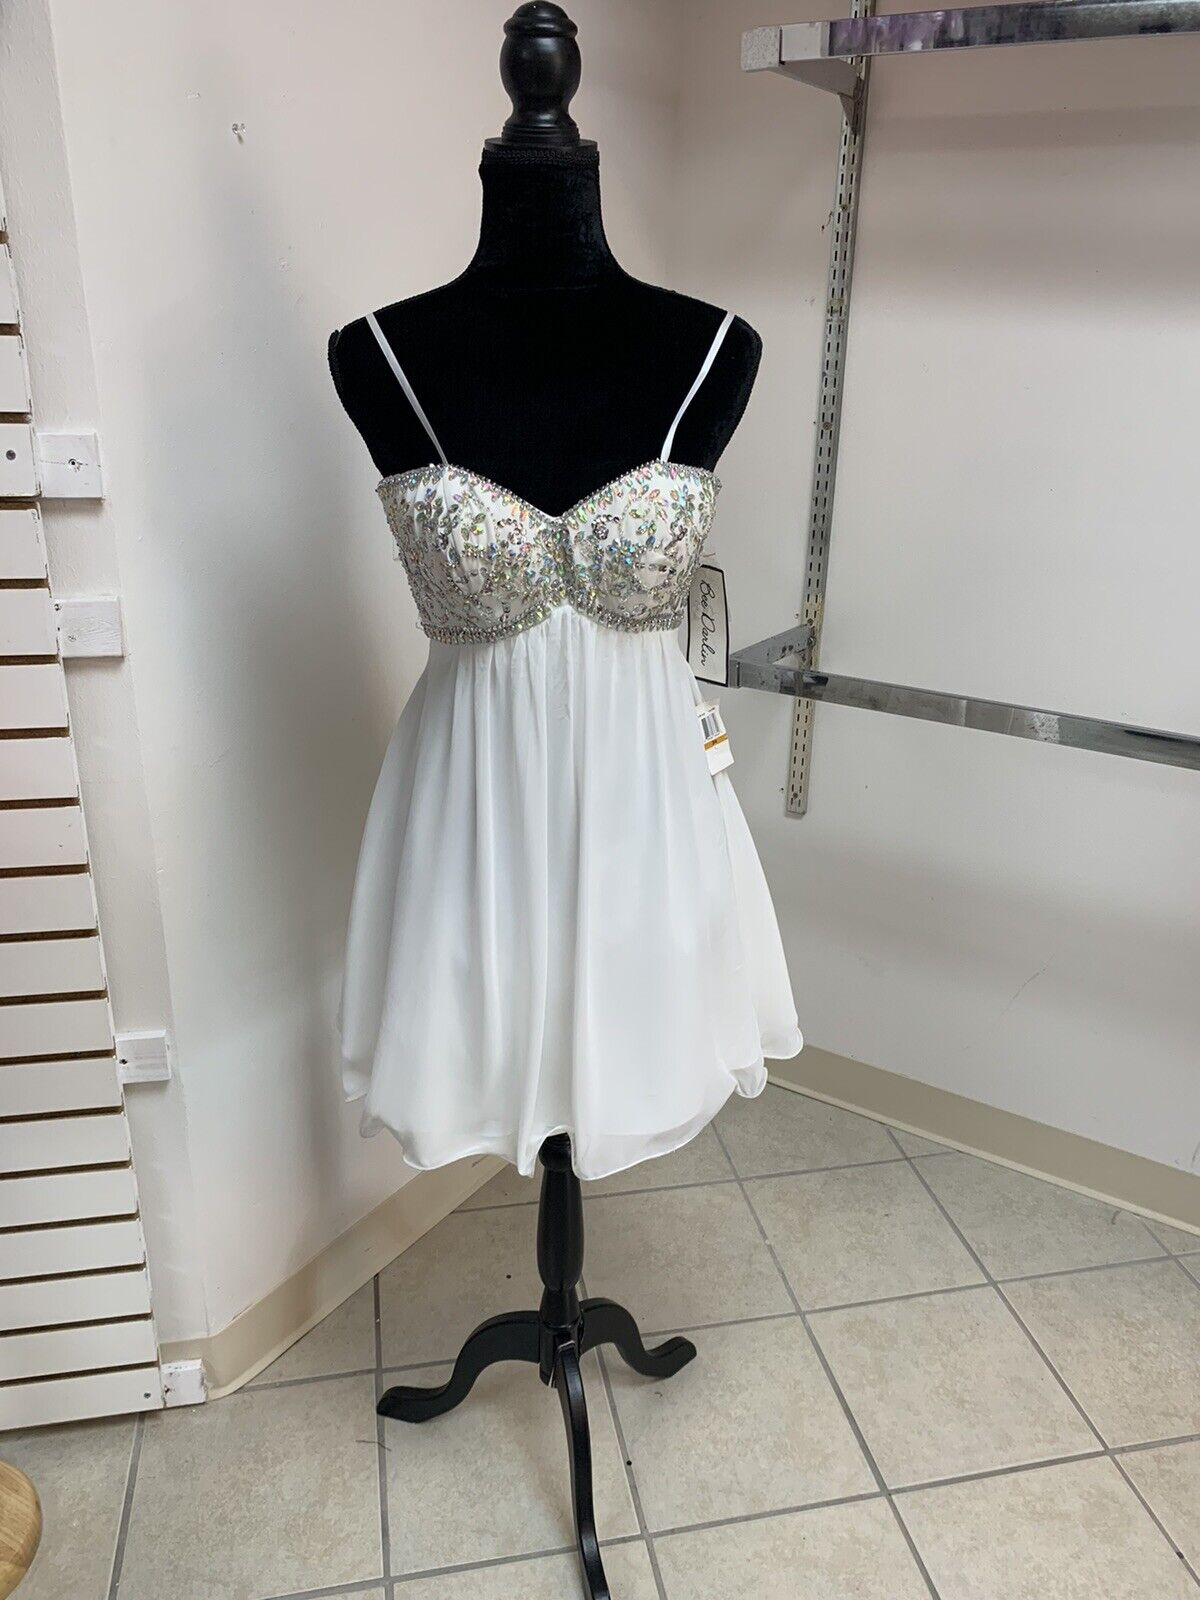 Size 3/4 Prom Party Homecoming Pageant Bridesmaid Formal Cocktail Dress NWT